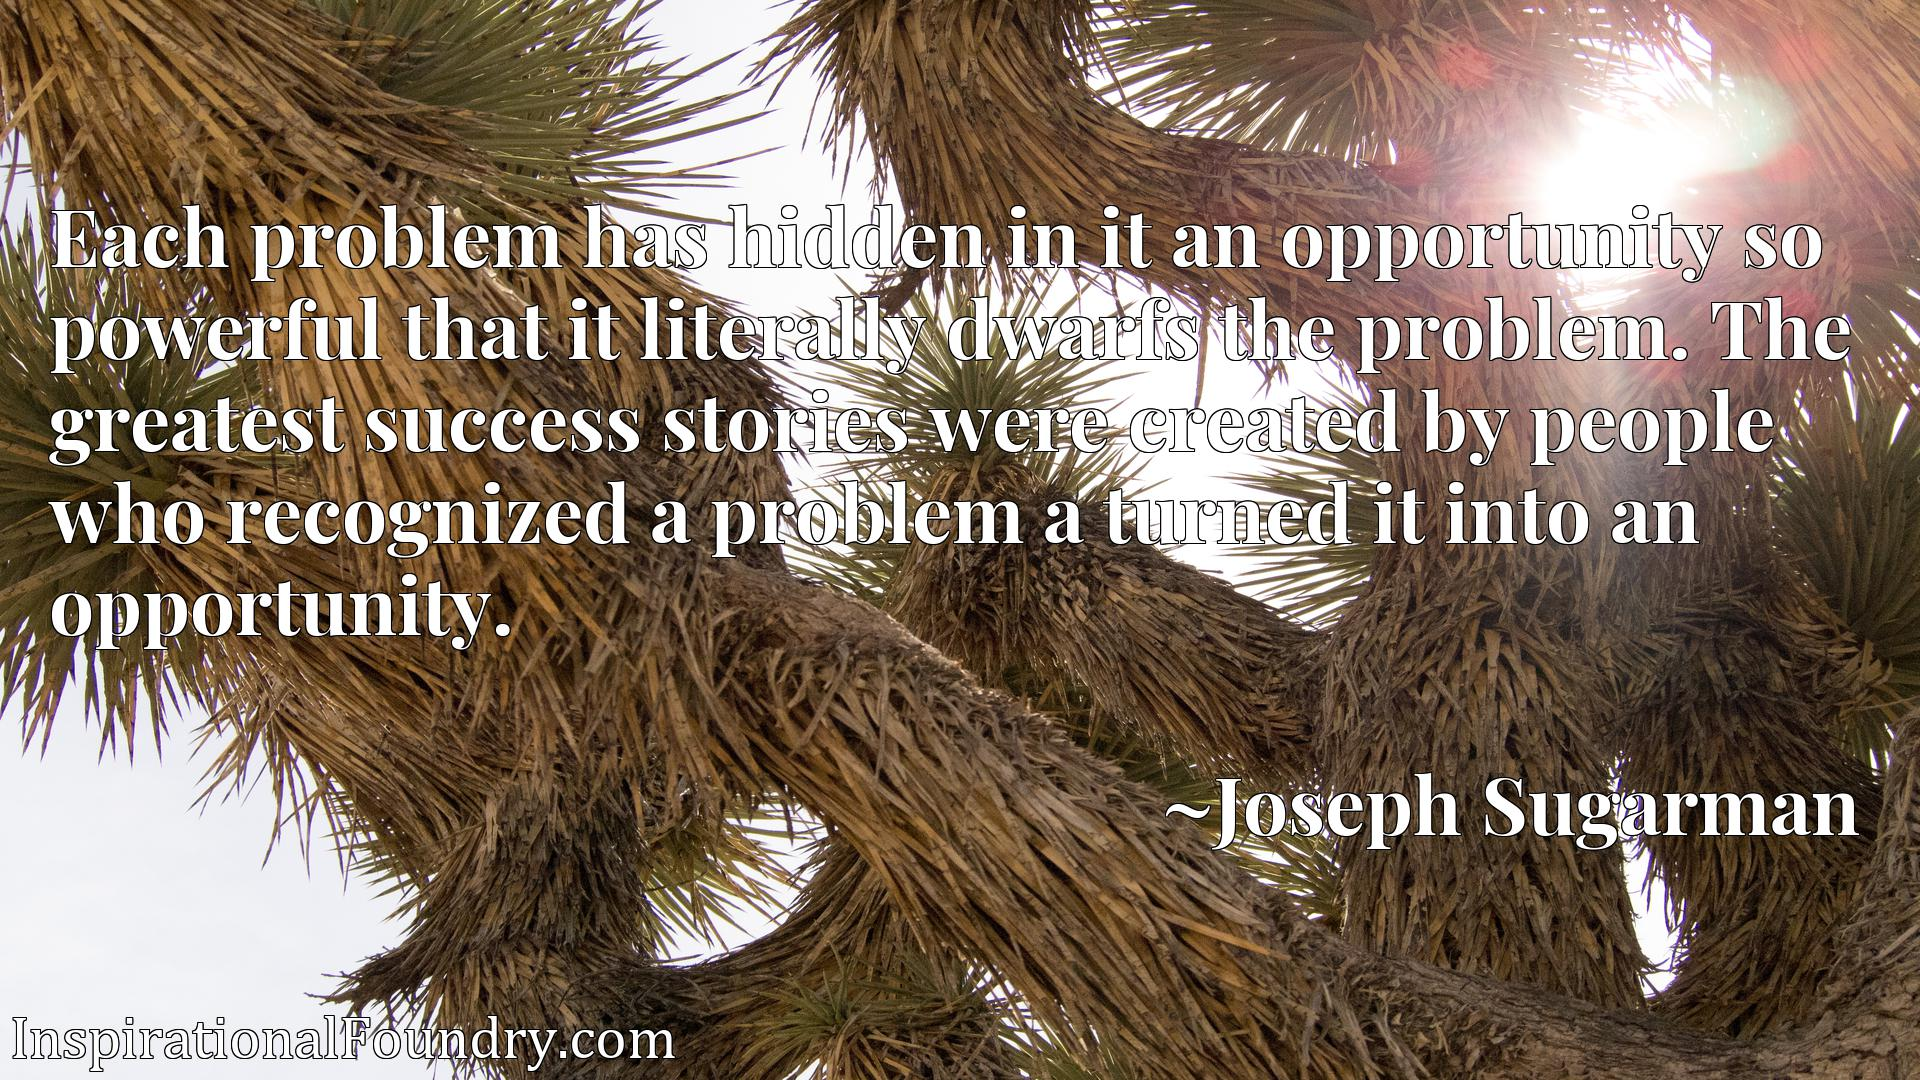 Each problem has hidden in it an opportunity so powerful that it literally dwarfs the problem. The greatest success stories were created by people who recognized a problem a turned it into an opportunity.